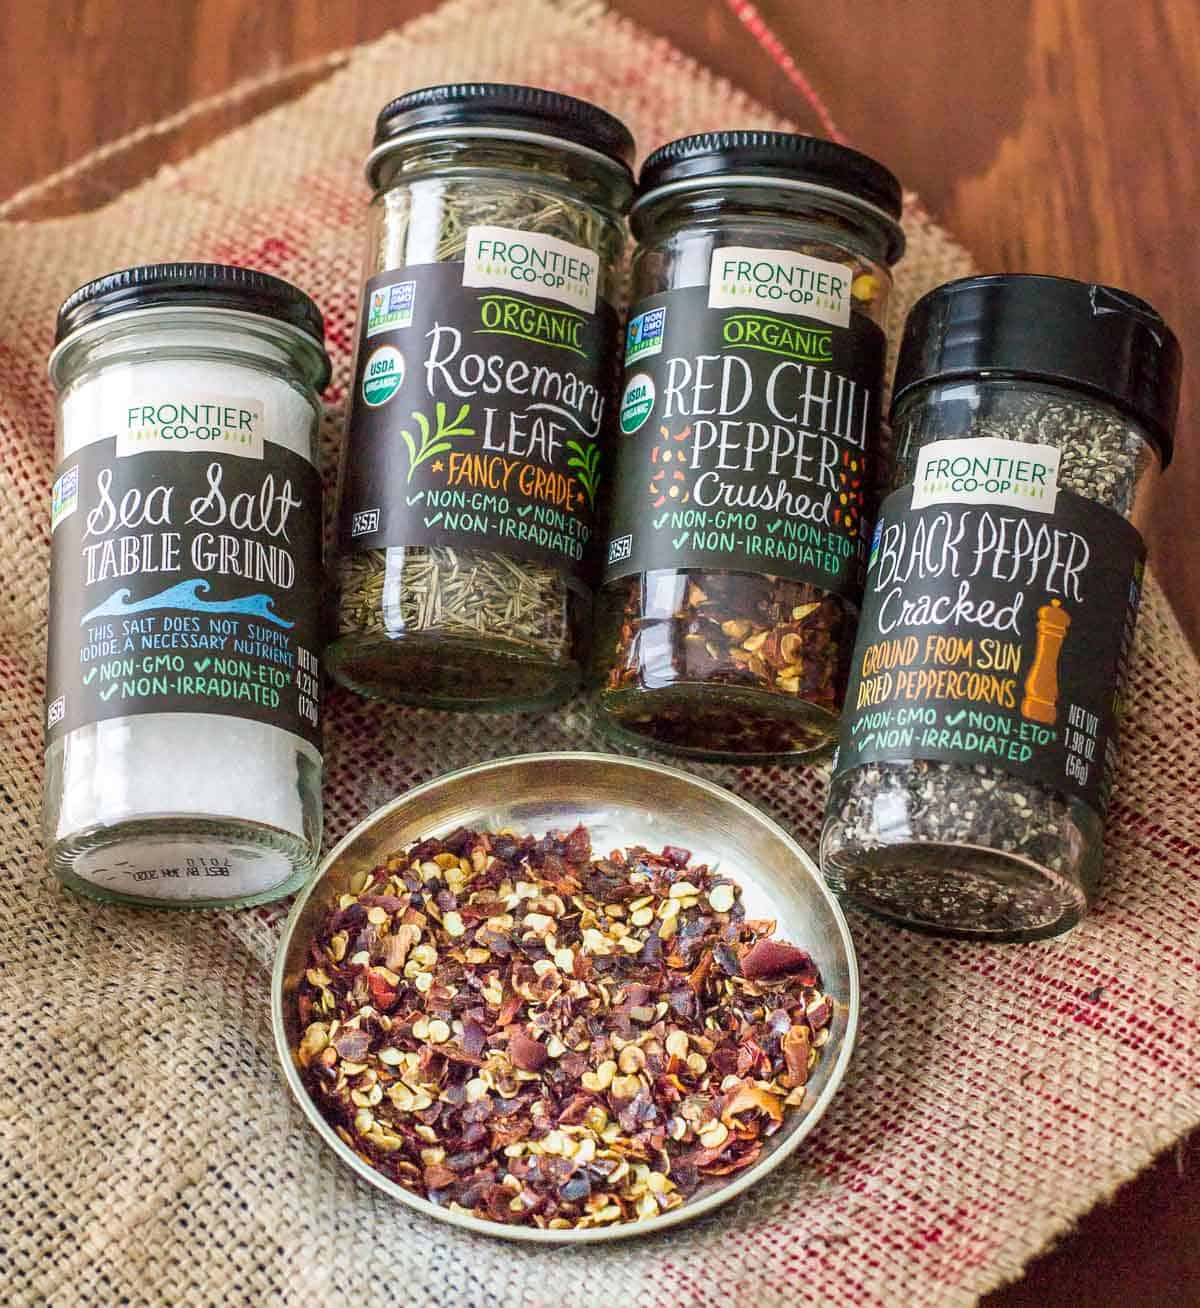 Frontier Spice package consisting of Sea salt, Rosemary leaf, Red Chili pepper, Black pepper cracked